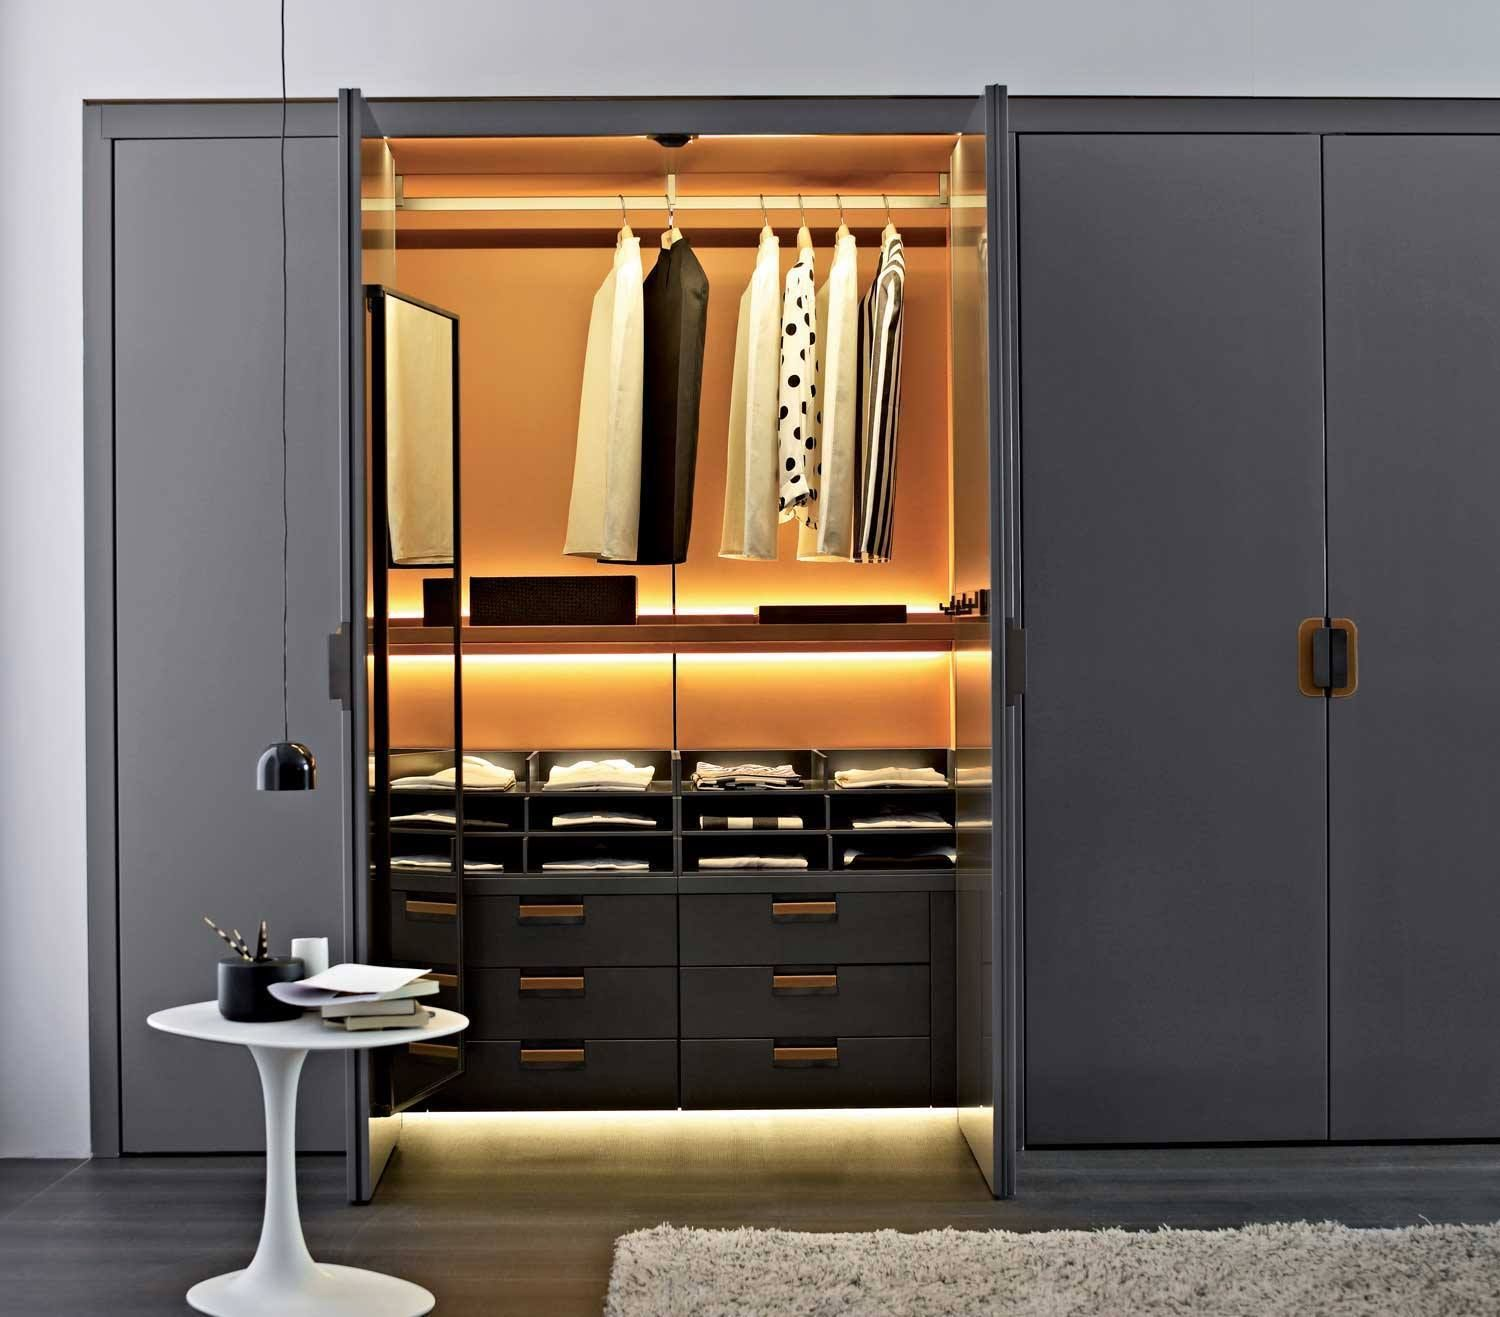 Schrank Modern Kleiderschrank | Dressing Room Design, Dressing Room Closet, Wardrobe Closet